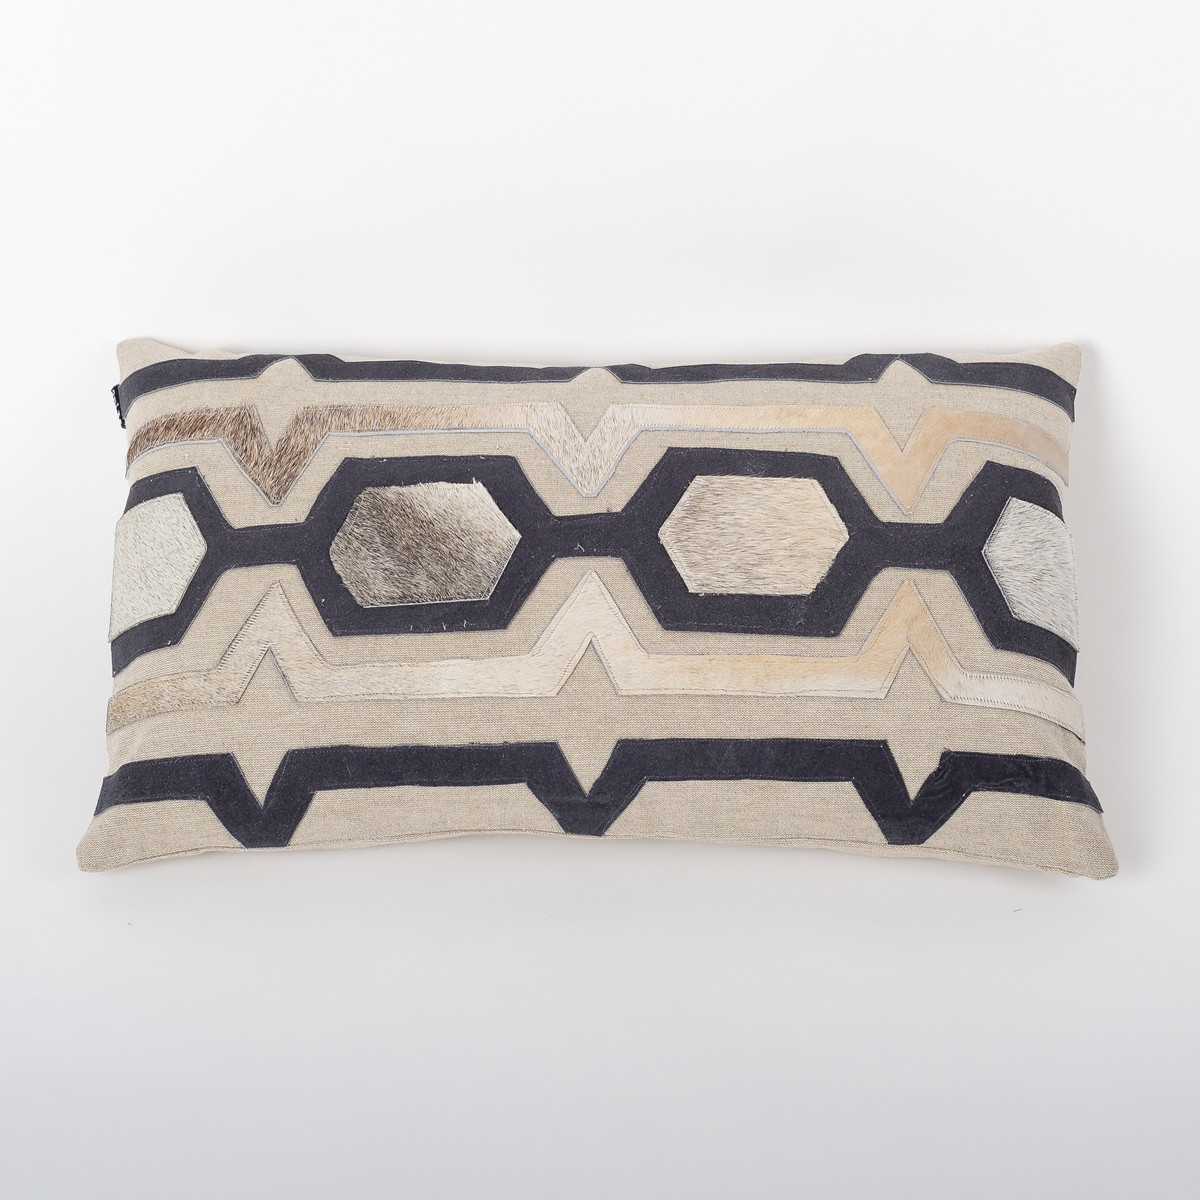 Regal Lattice - Wheat Cotton Cushion Cover with Suede & Leather Cut Work